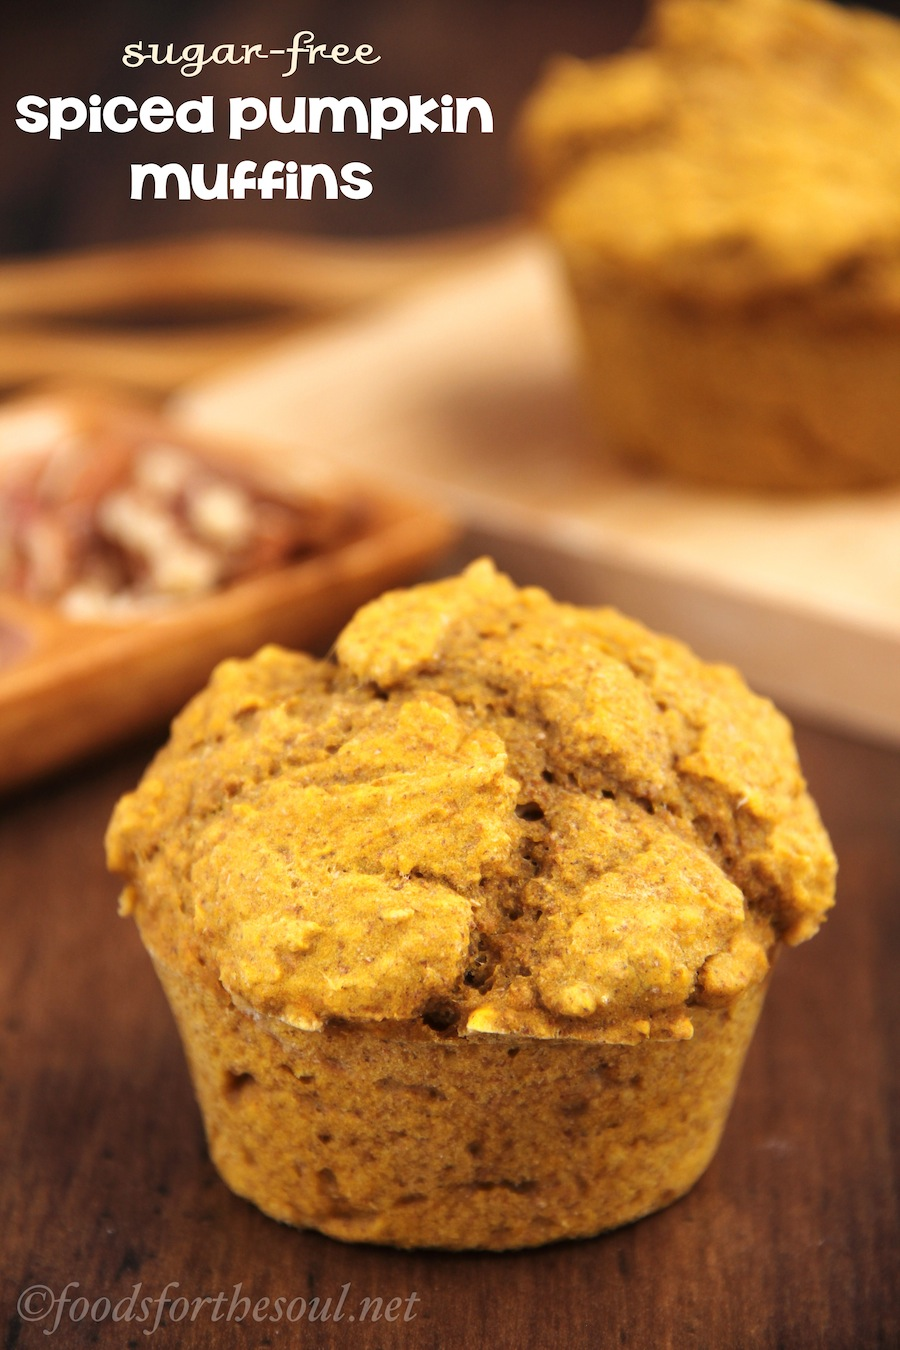 Spiced Pumpkin Muffins (Sugar-Free)